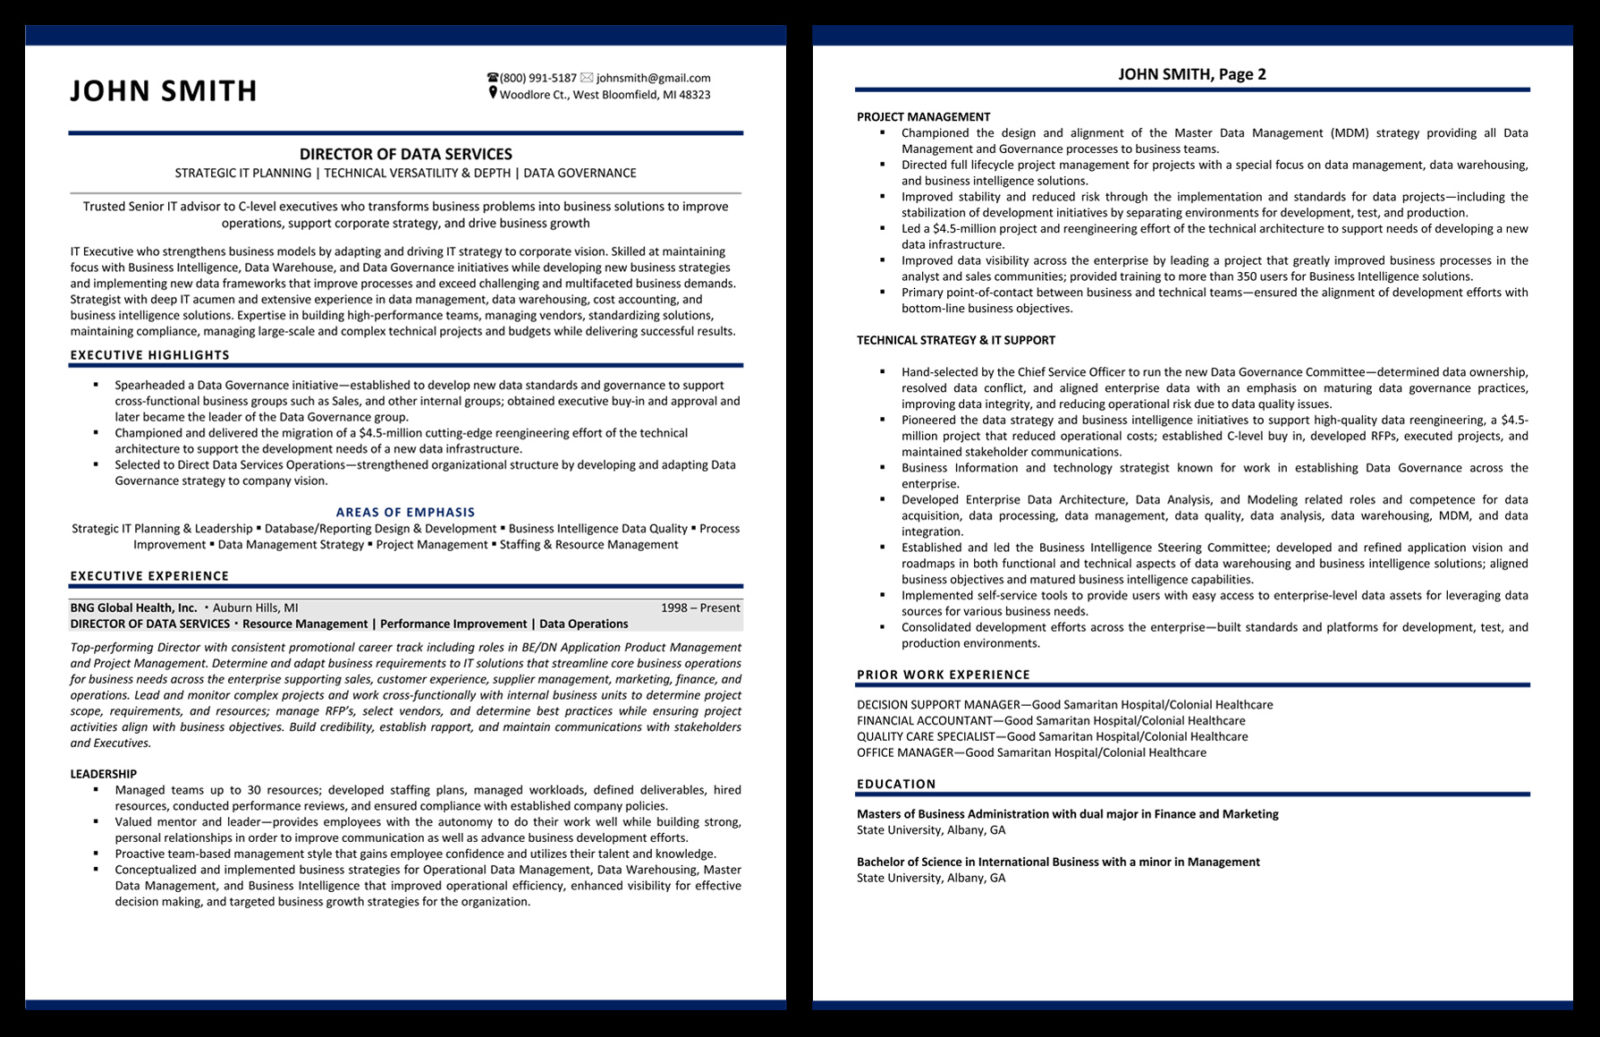 Resumes line Australia Resume Expertise Section Java